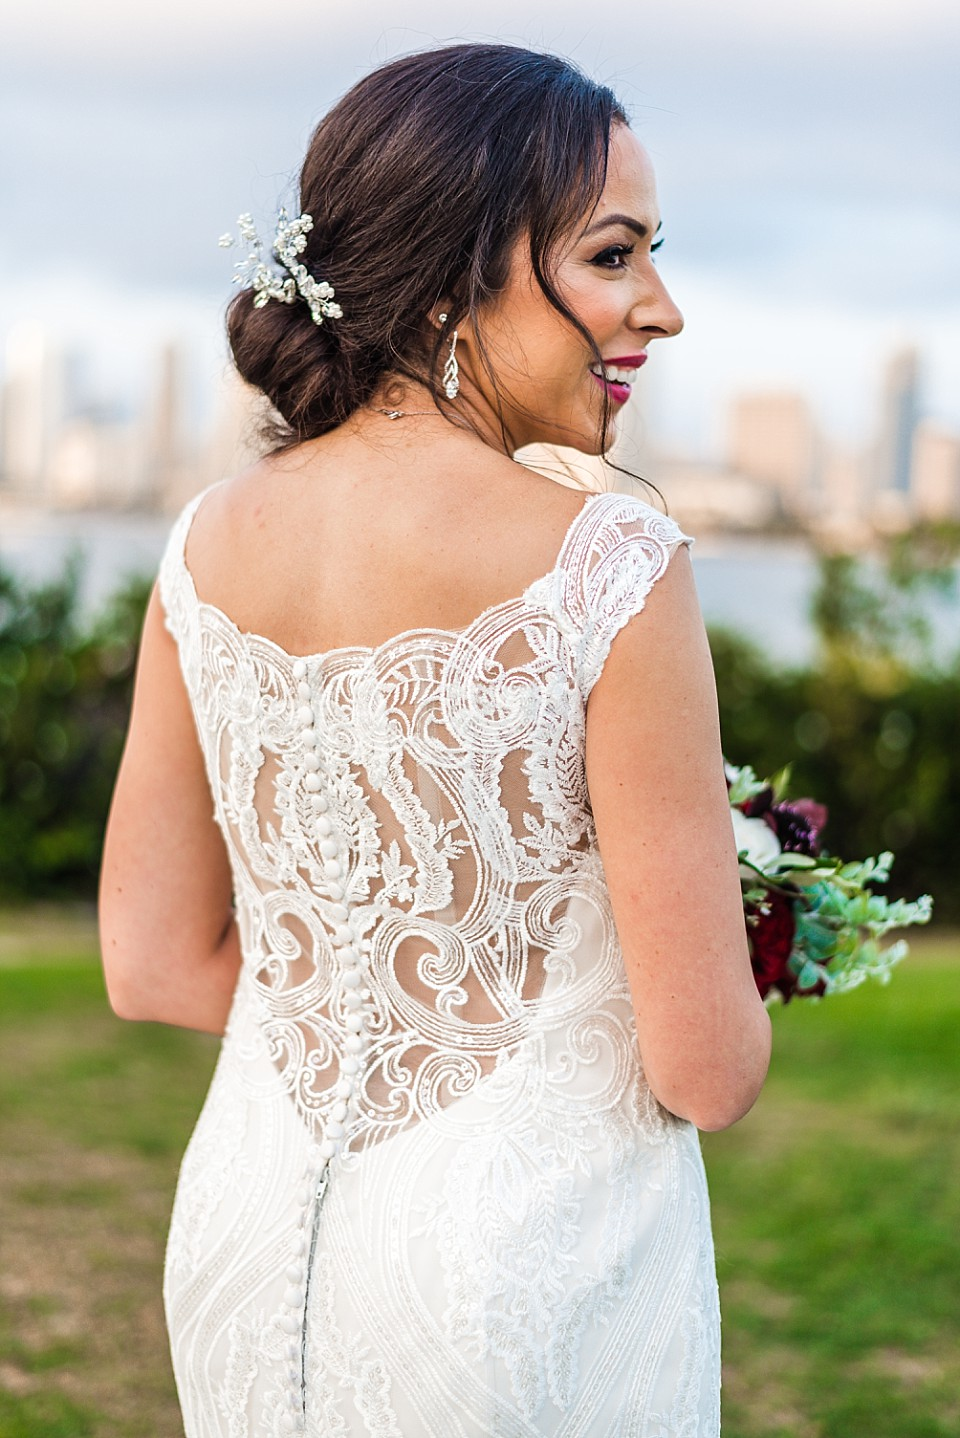 back of wedding dress bridal details elegant classic bride outdoor wedding San Diego